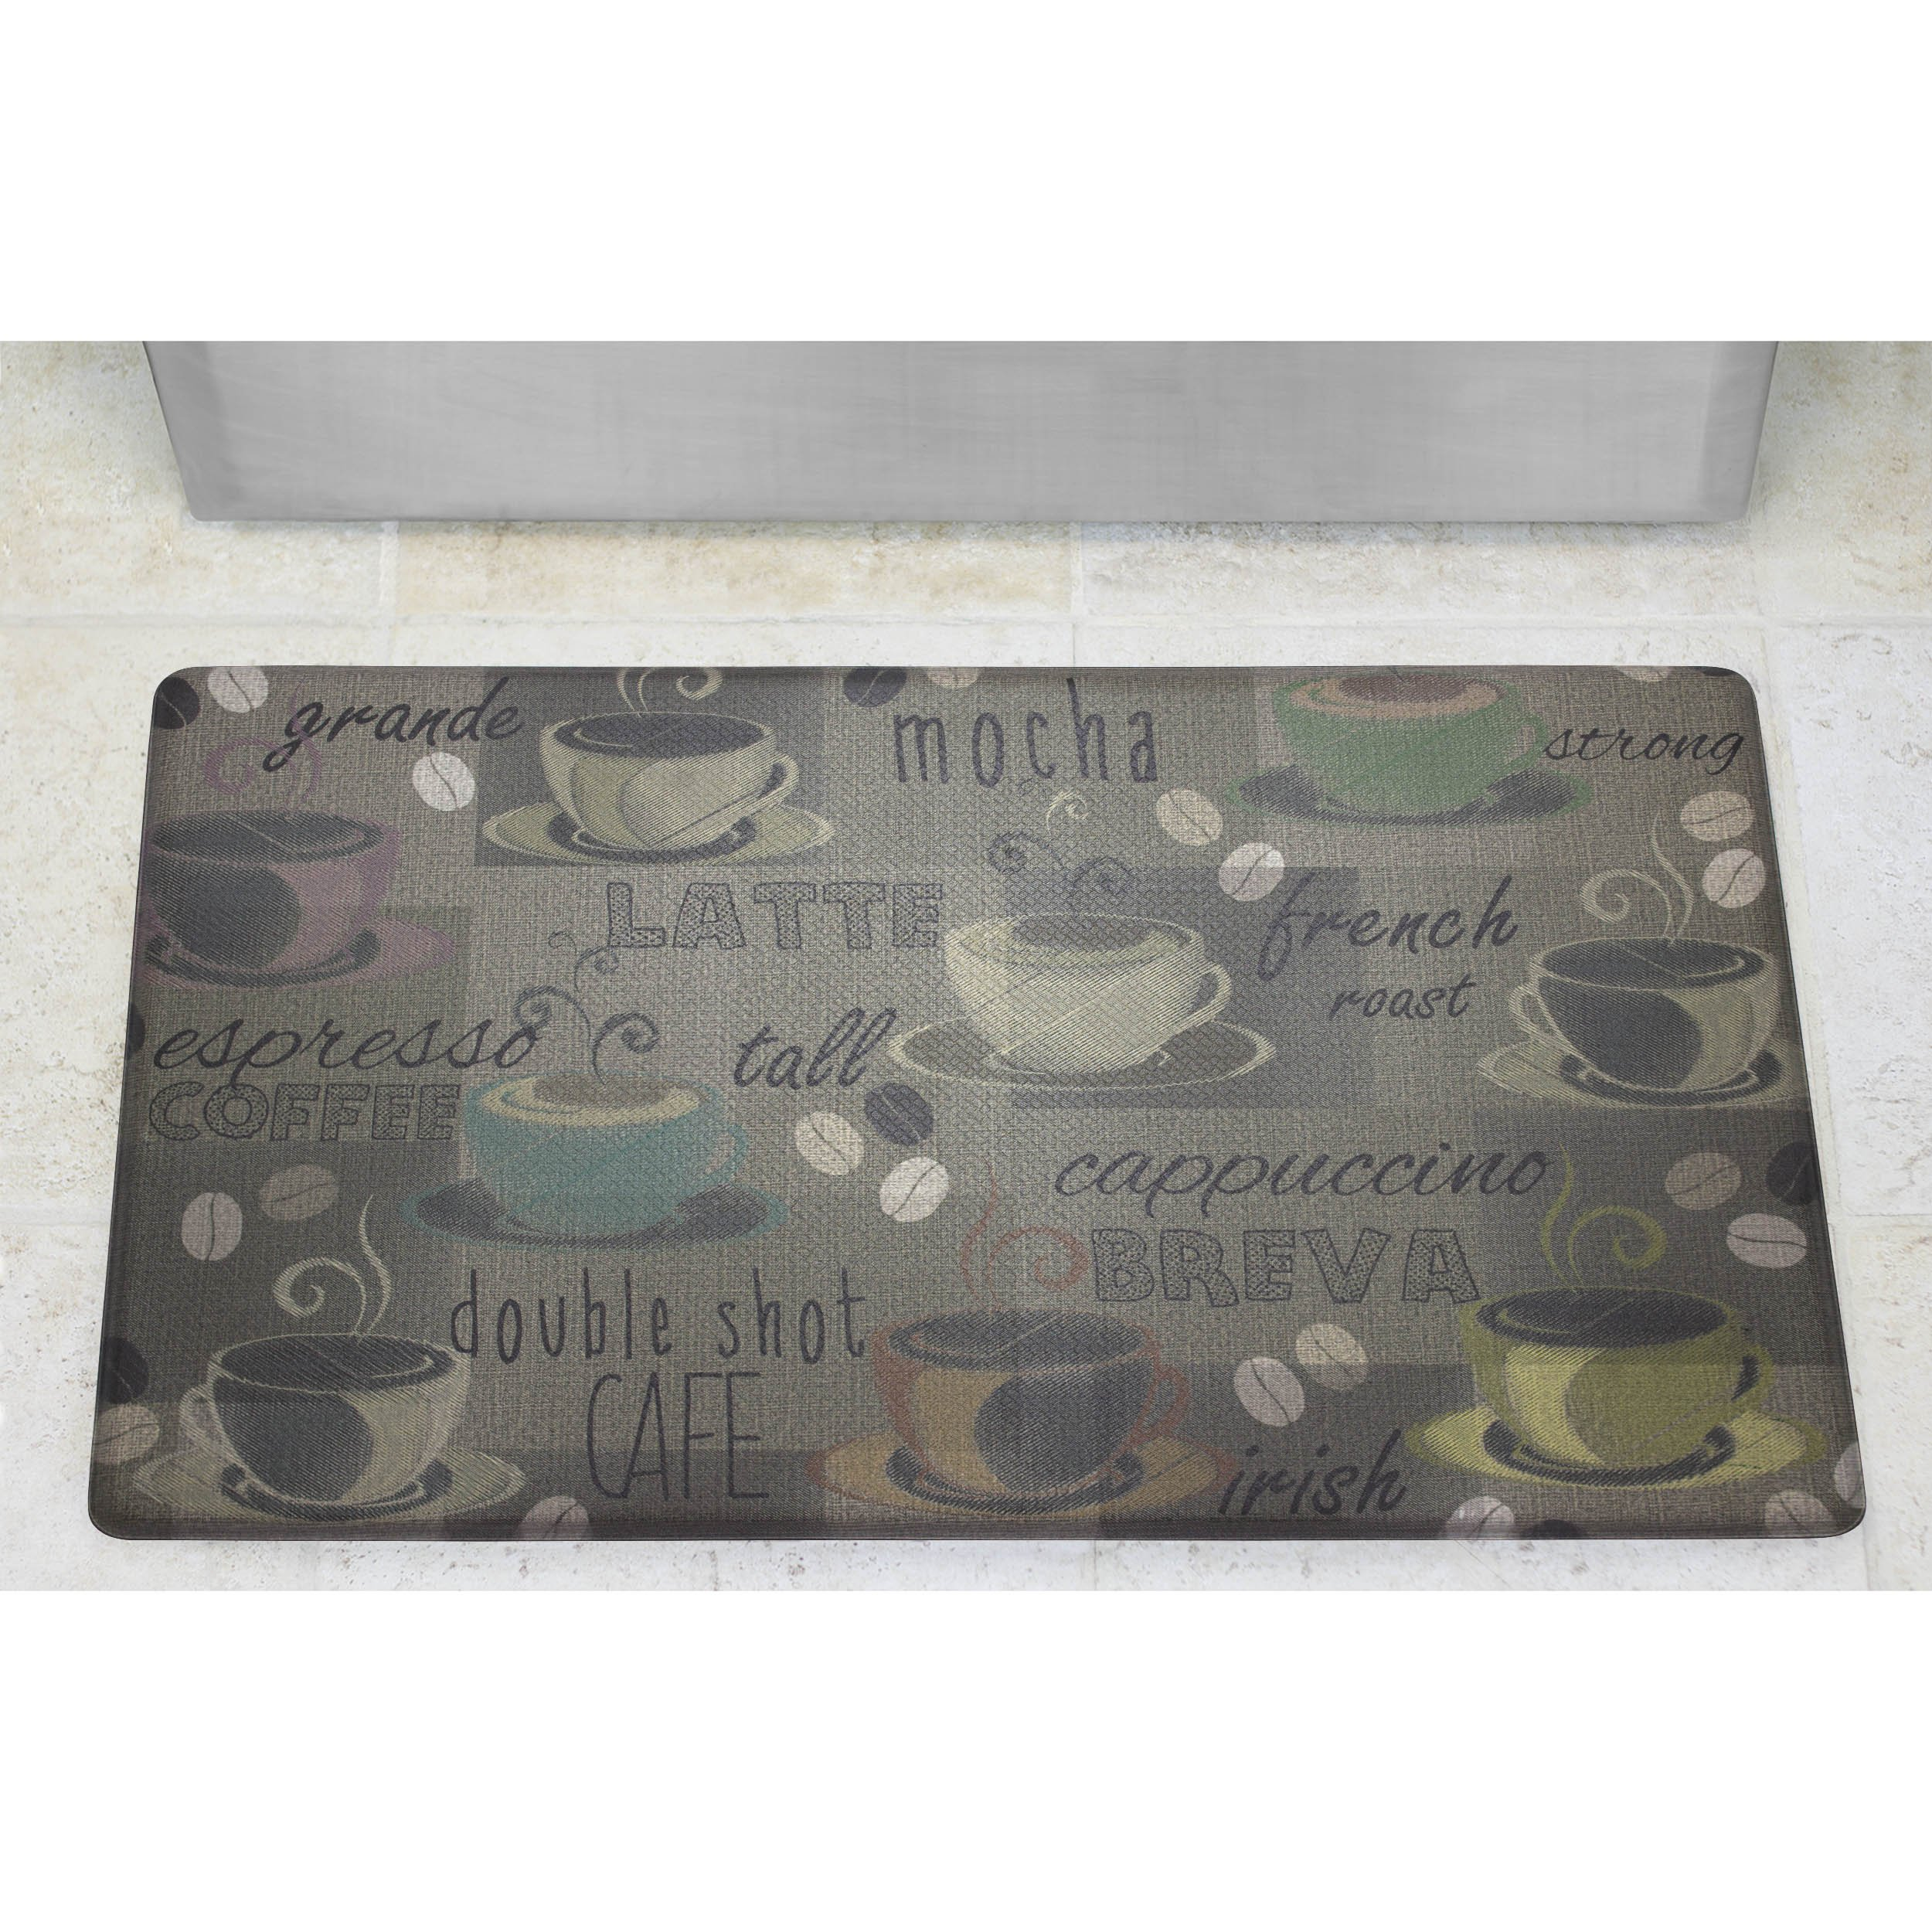 Chef Gear Roasted Coffee Anti-Fatigue Comfort Memory Foam Kitchen Chef Mat, 18 x 30 by Chef Gear (Image #3)